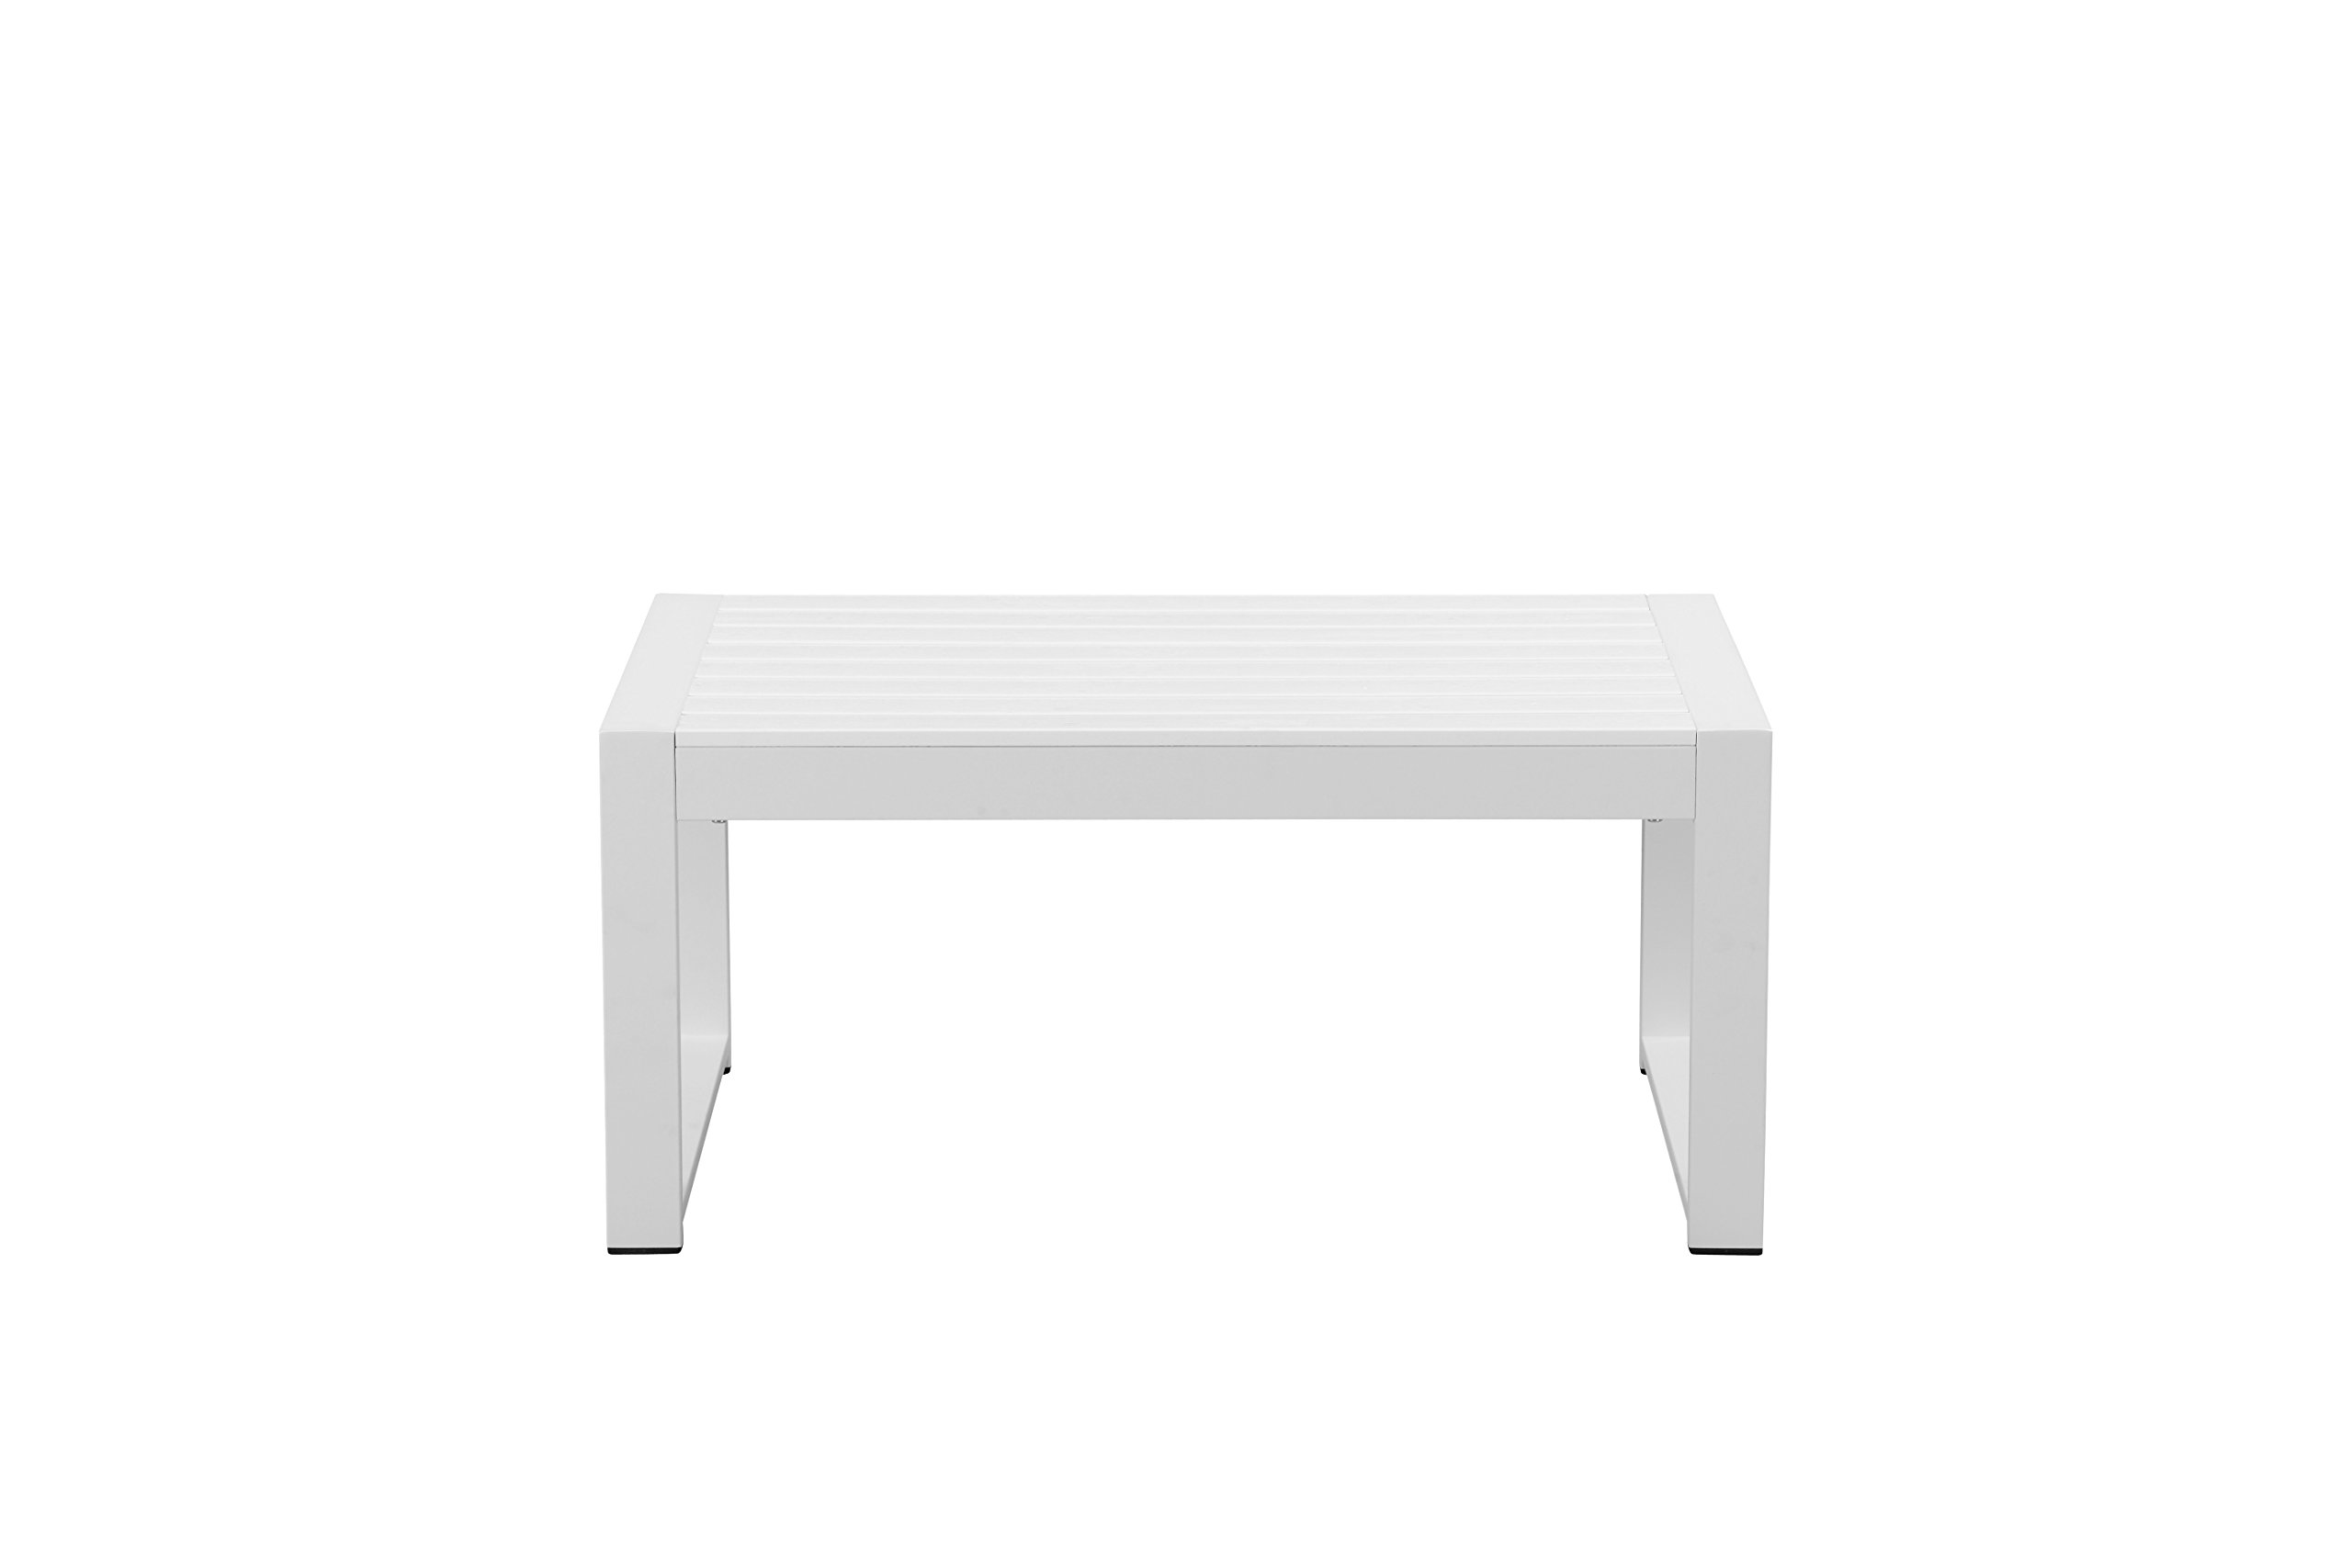 Pangea Home CT-WHT Chester Coffee Table, White Anodized Aluminum/Polyresin - Manufacturer: Pangea Home Material Type: aluminum Color NAME: White Anodized Aluminum/White Polyresin - patio-tables, patio-furniture, patio - 61MCyiZZicL -